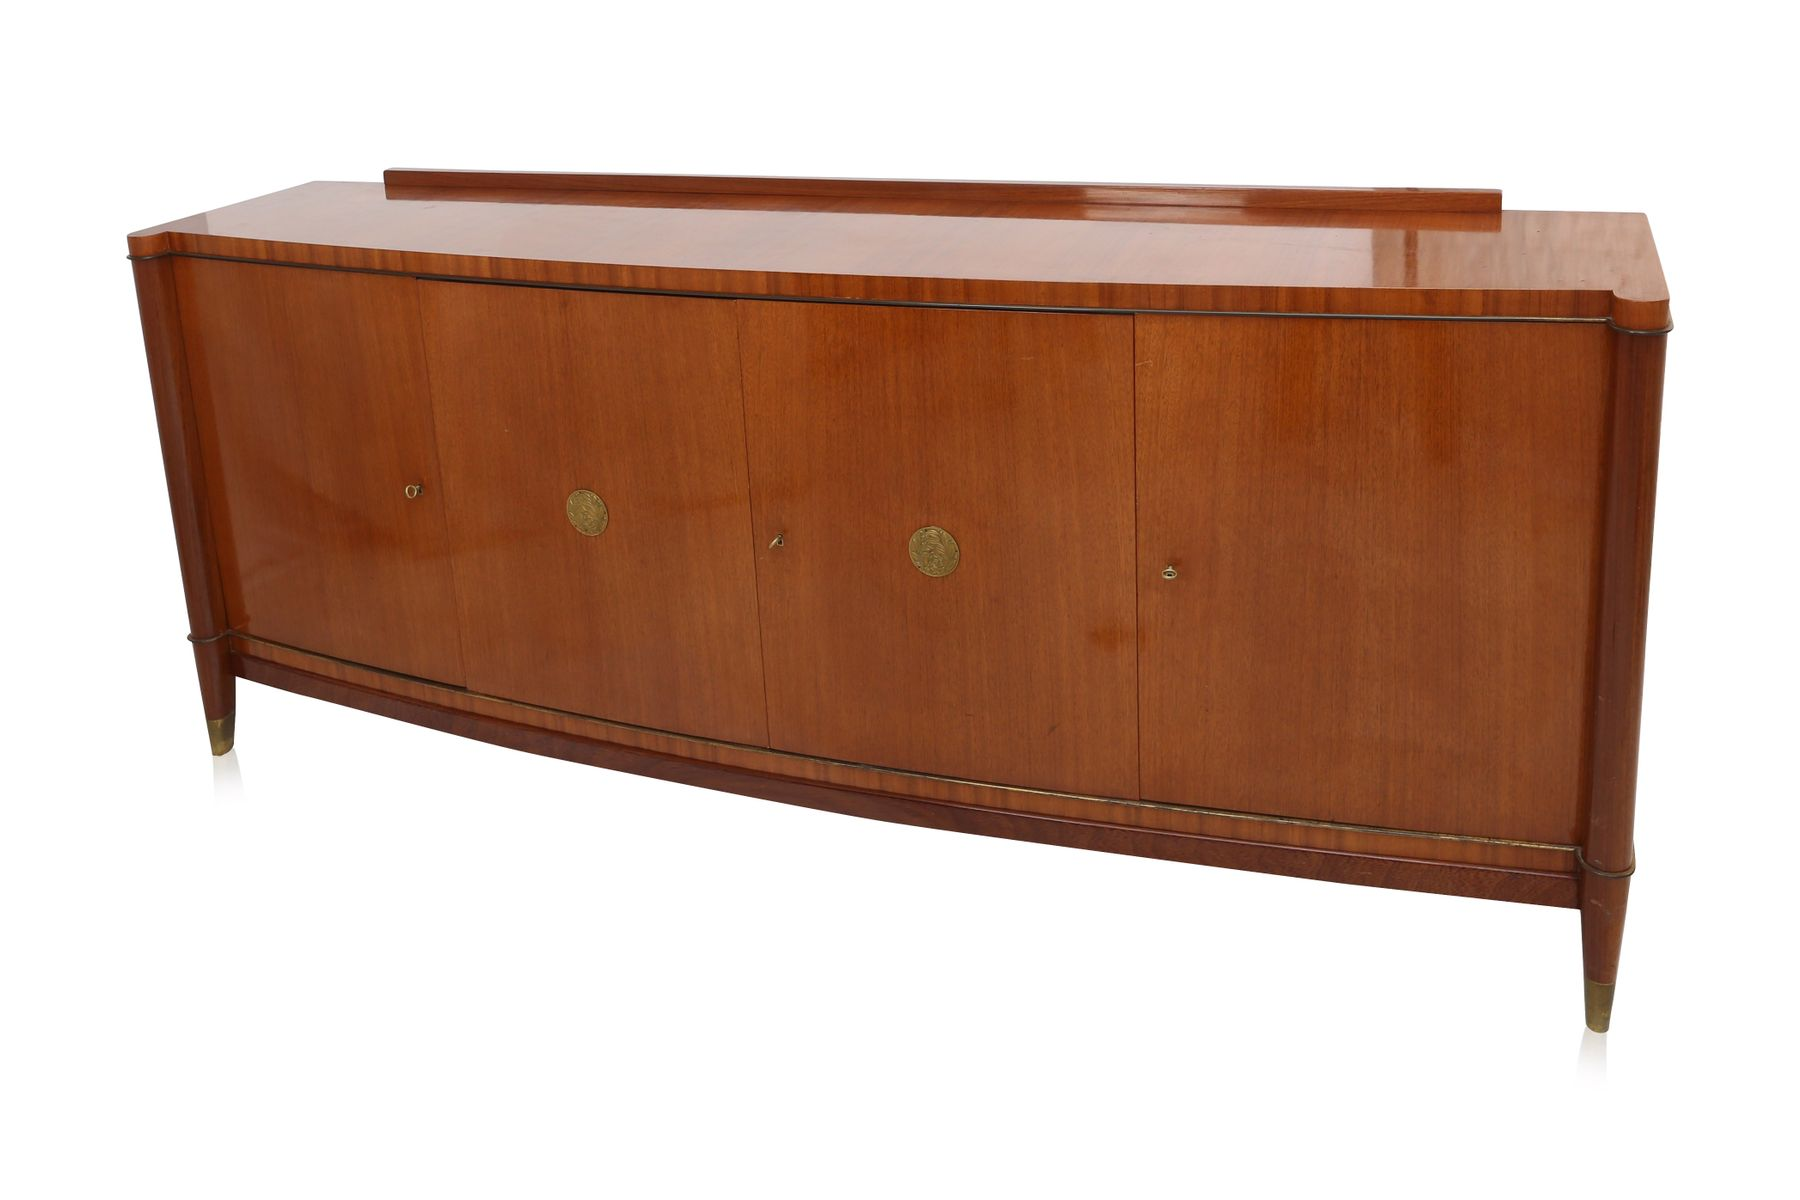 Credenza from de coene 1950s for sale at pamono for 1950 s credenza